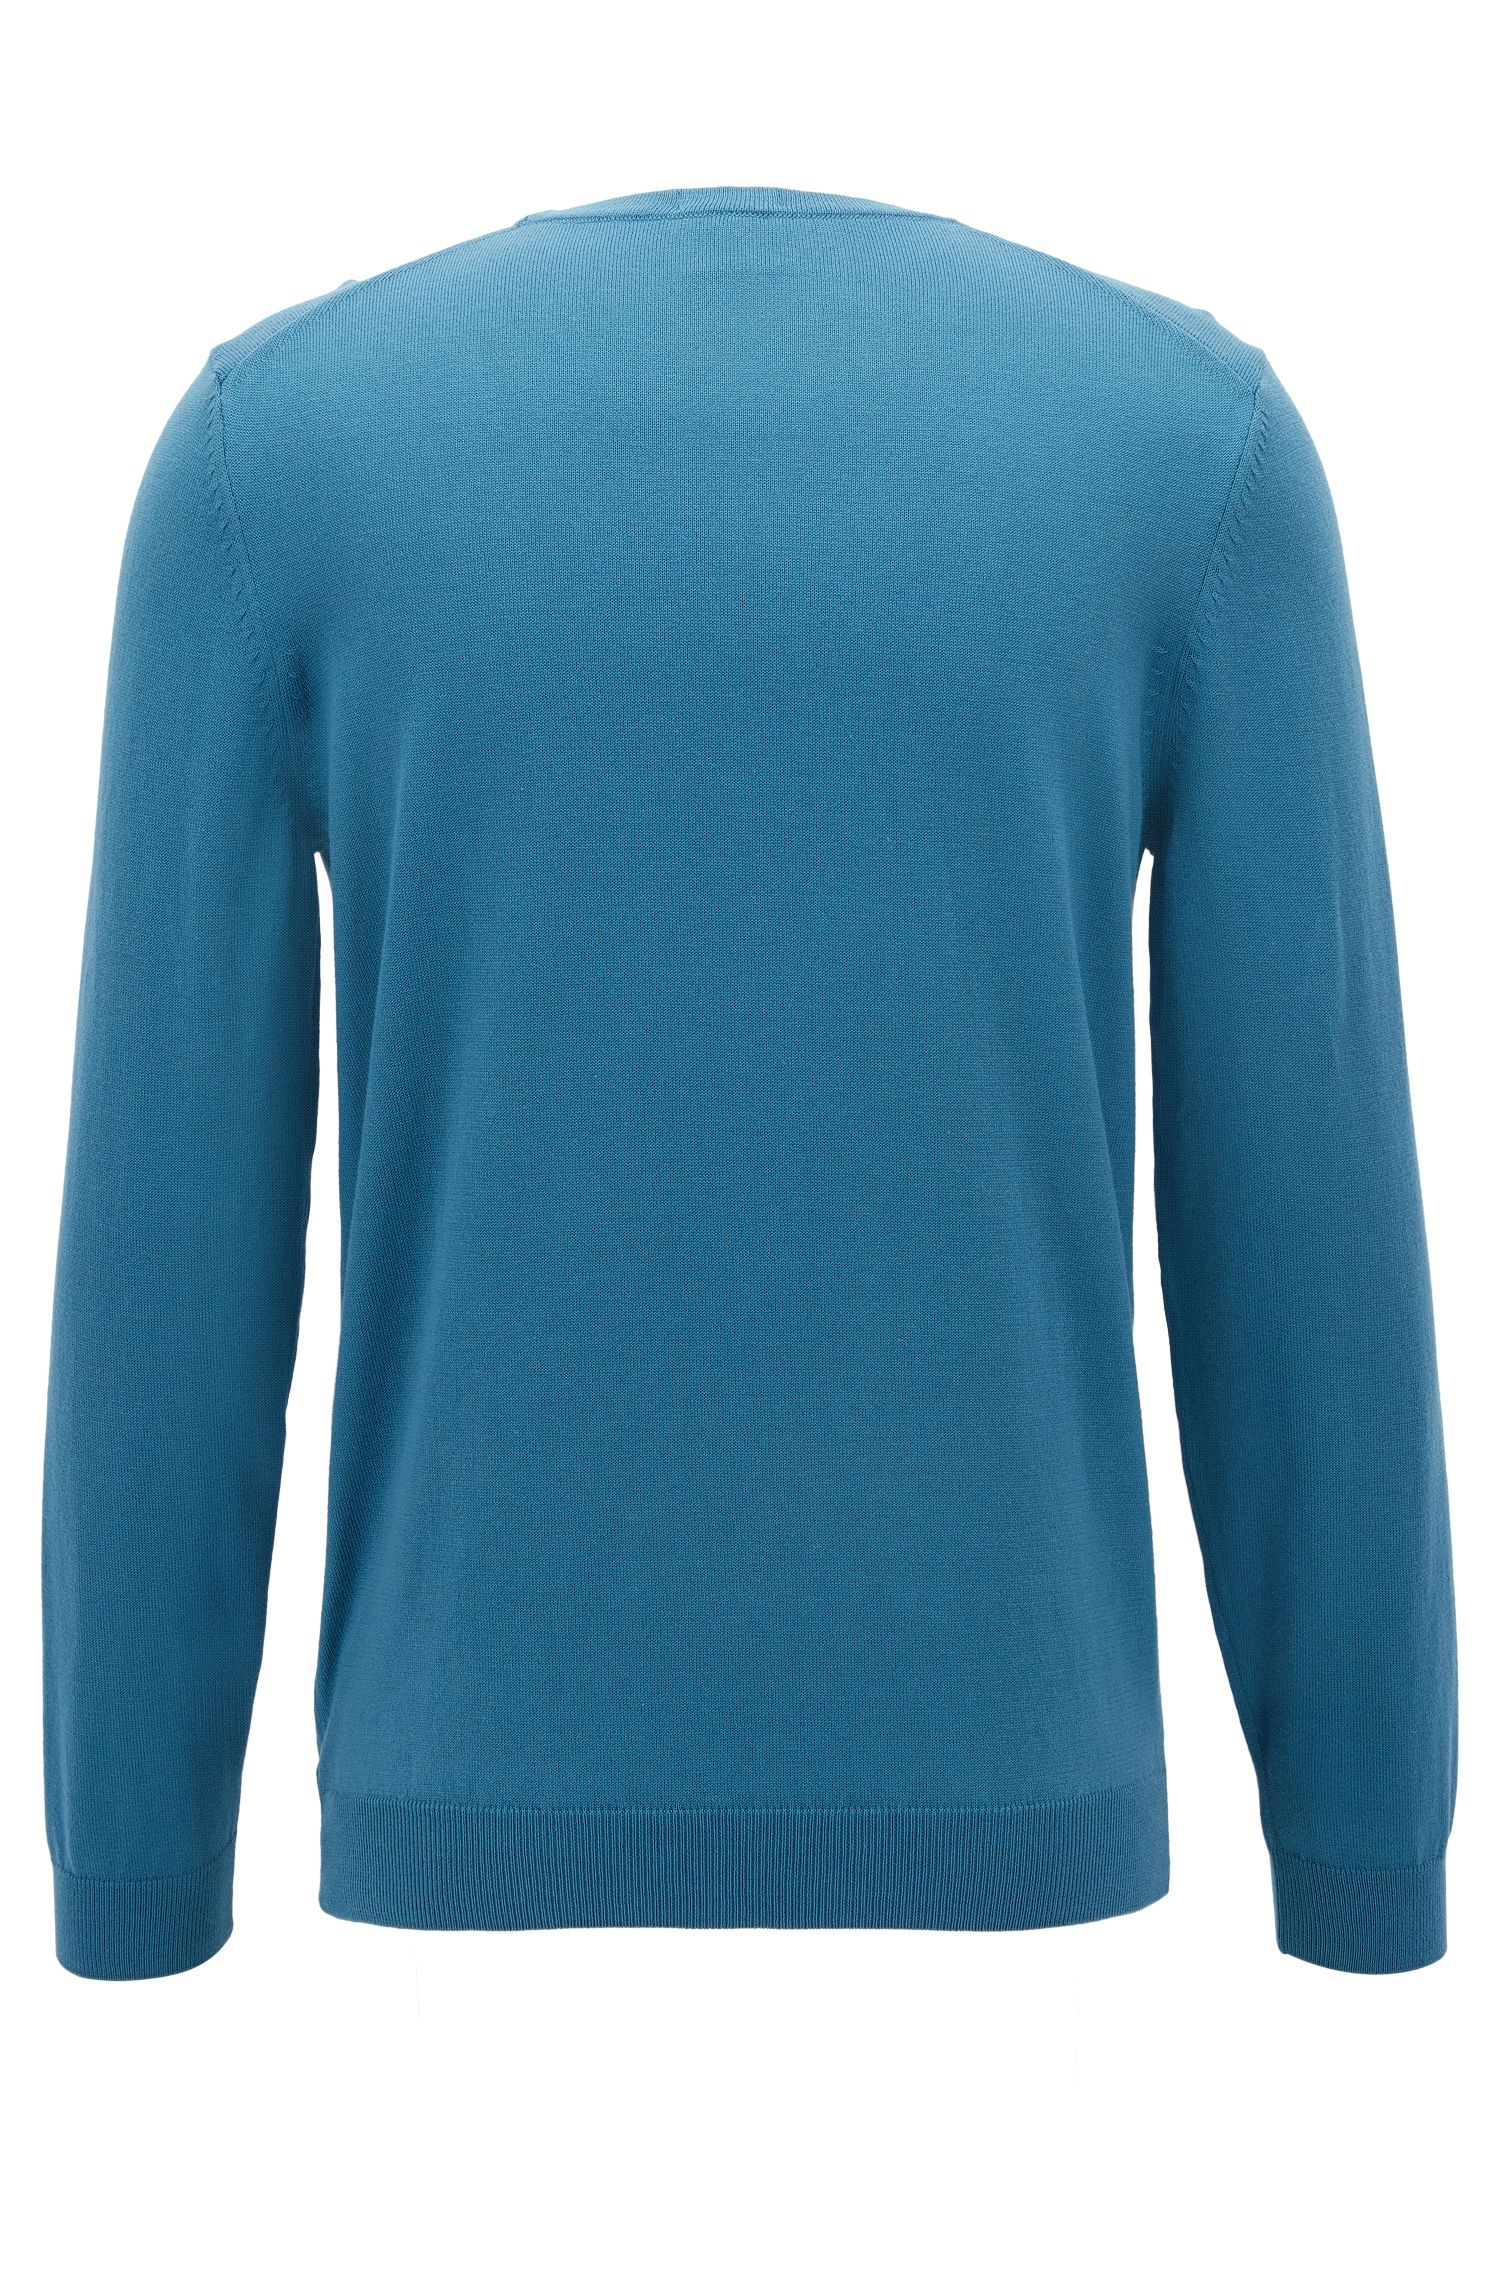 Crew-neck sweater in soft-washed Egyptian cotton